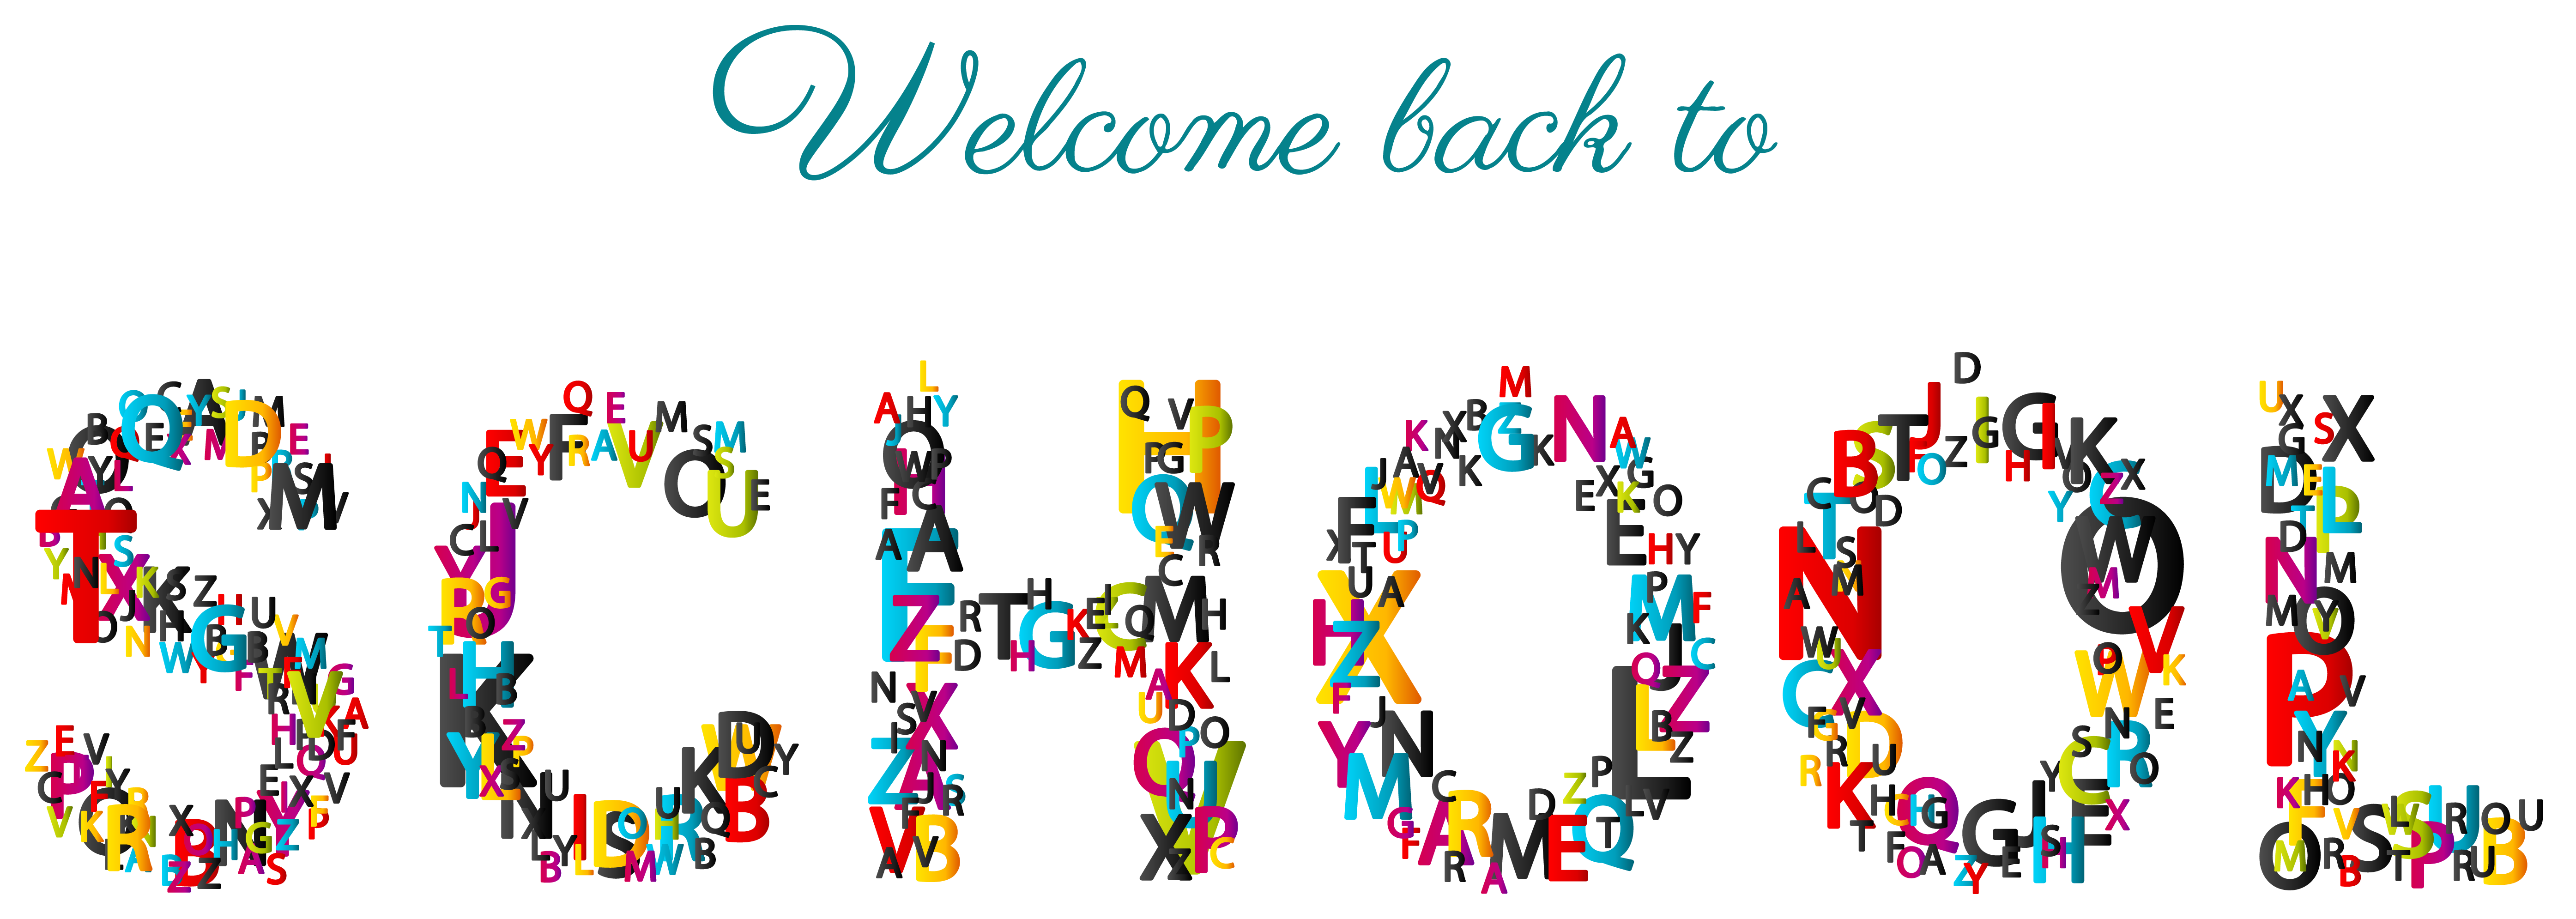 Back 2 school clipart clip art transparent download 28+ Collection of Welcome Back Clipart School | High quality, free ... clip art transparent download